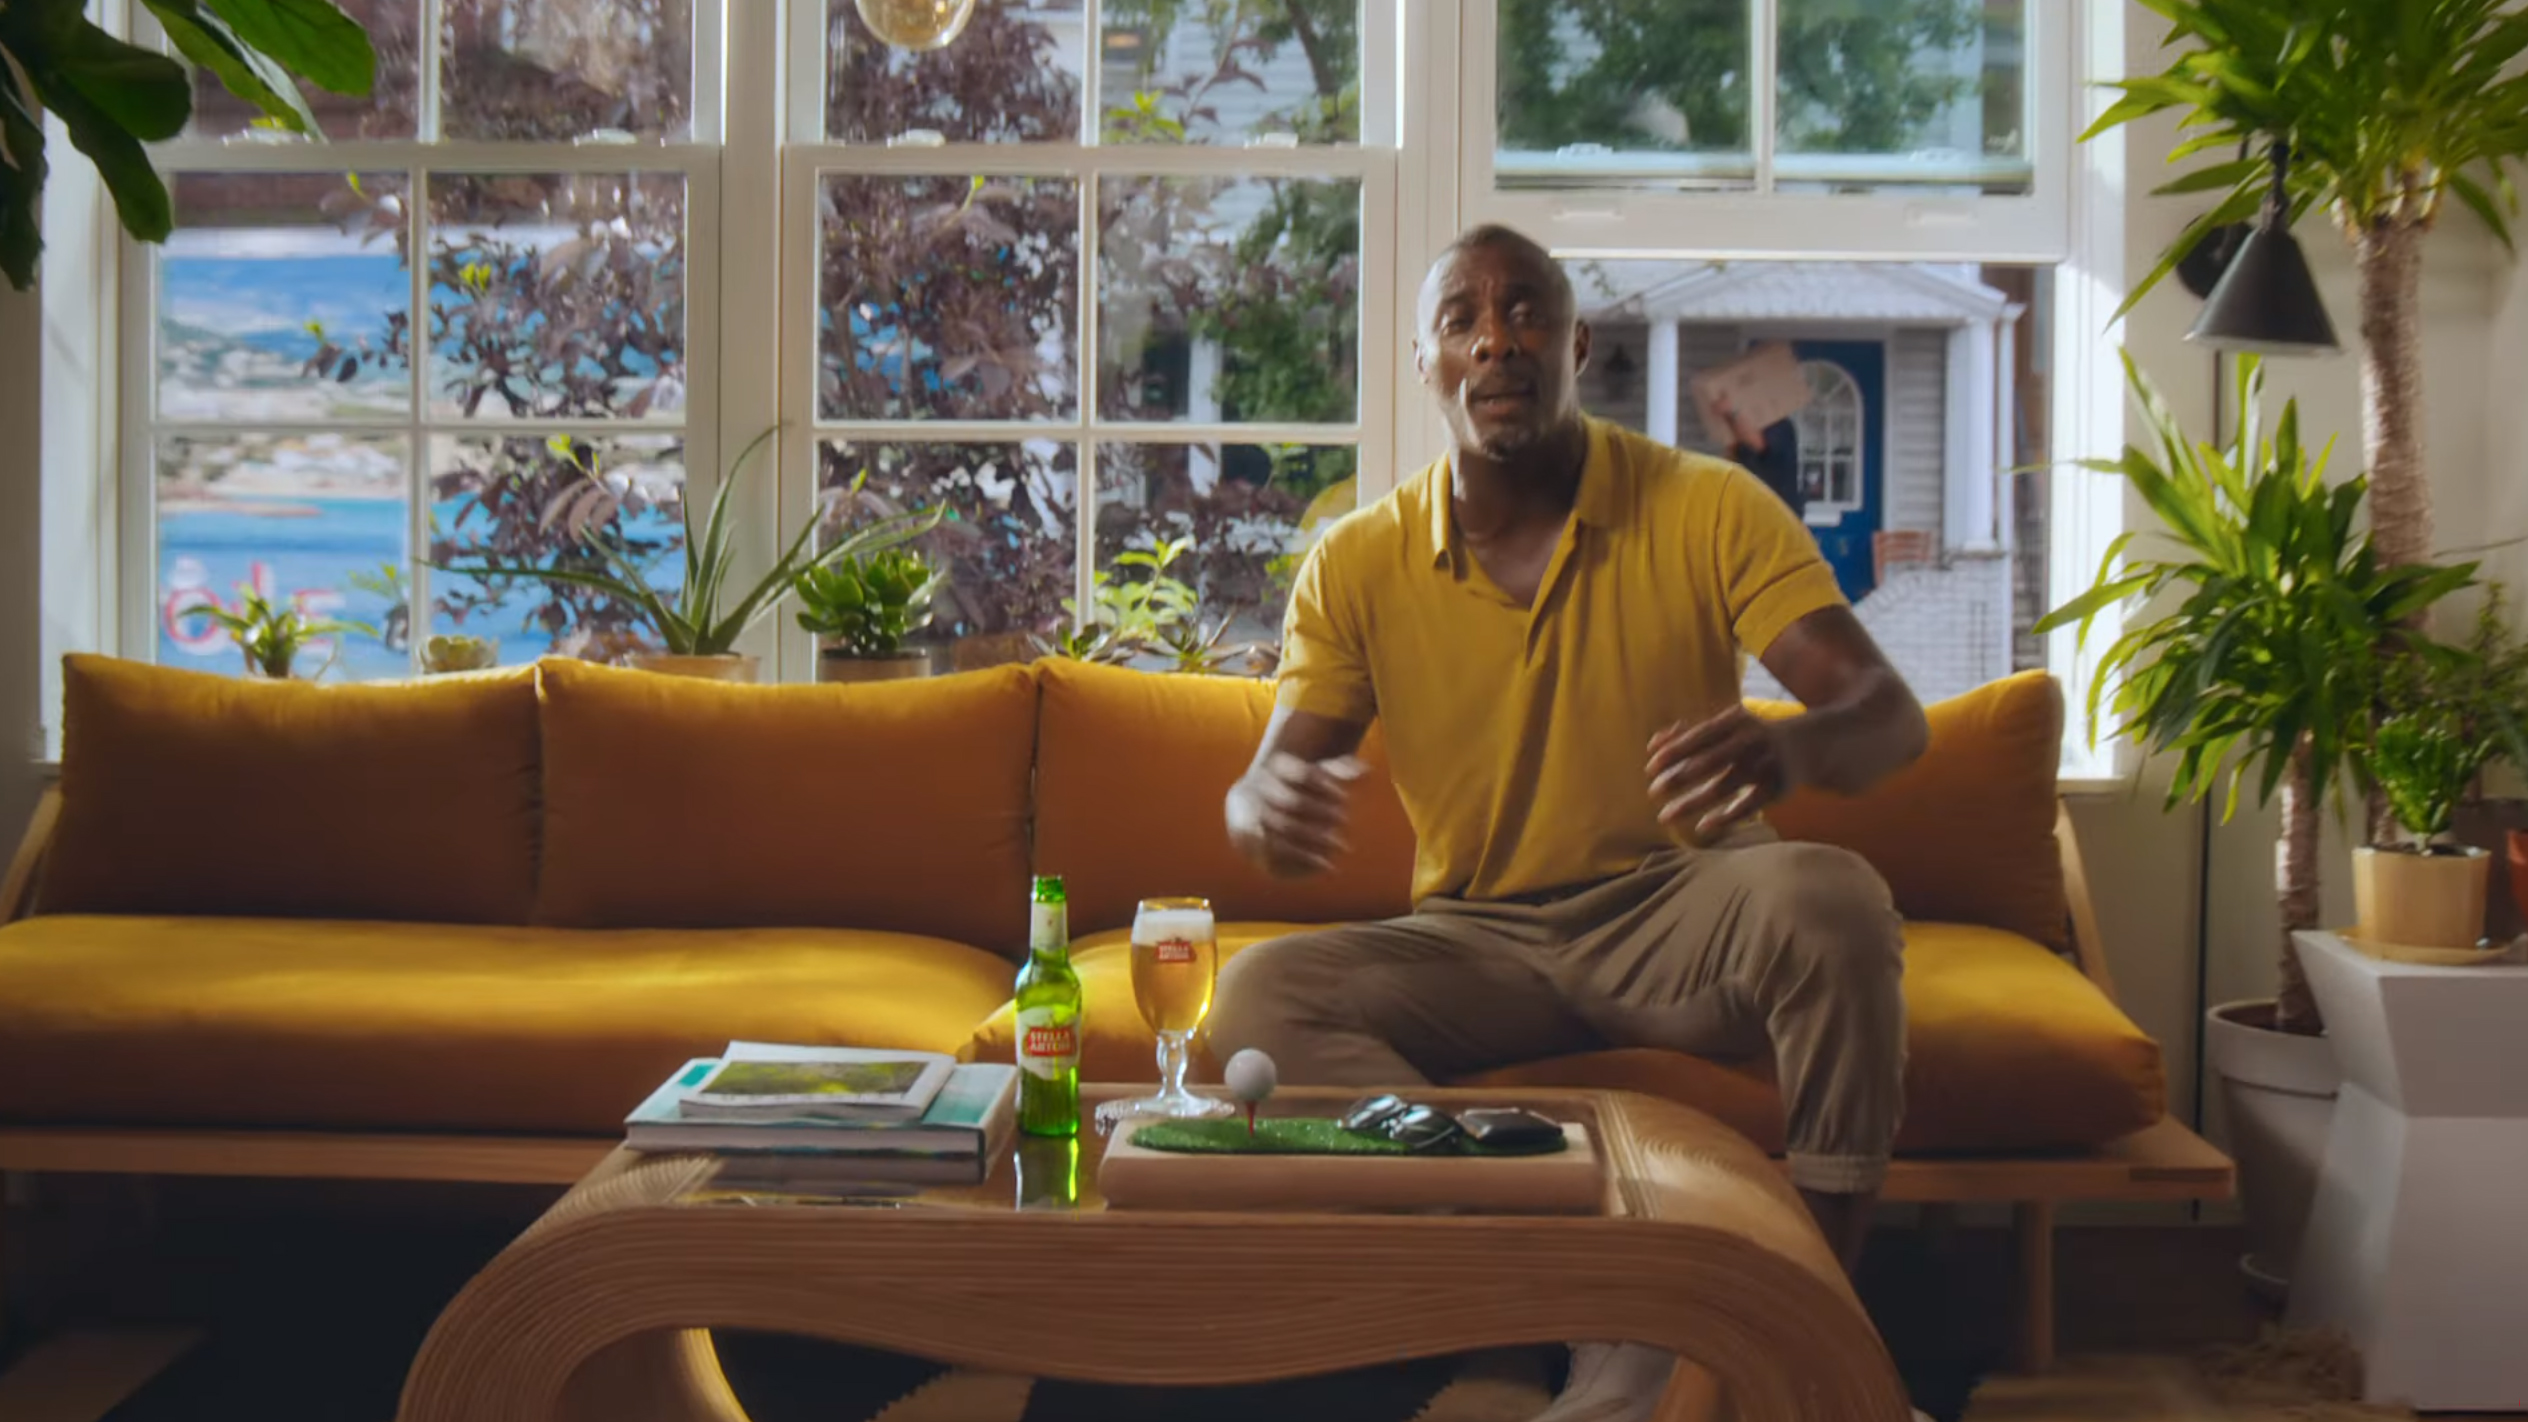 Stella Artois, 'Vacation Is About How You See Things'